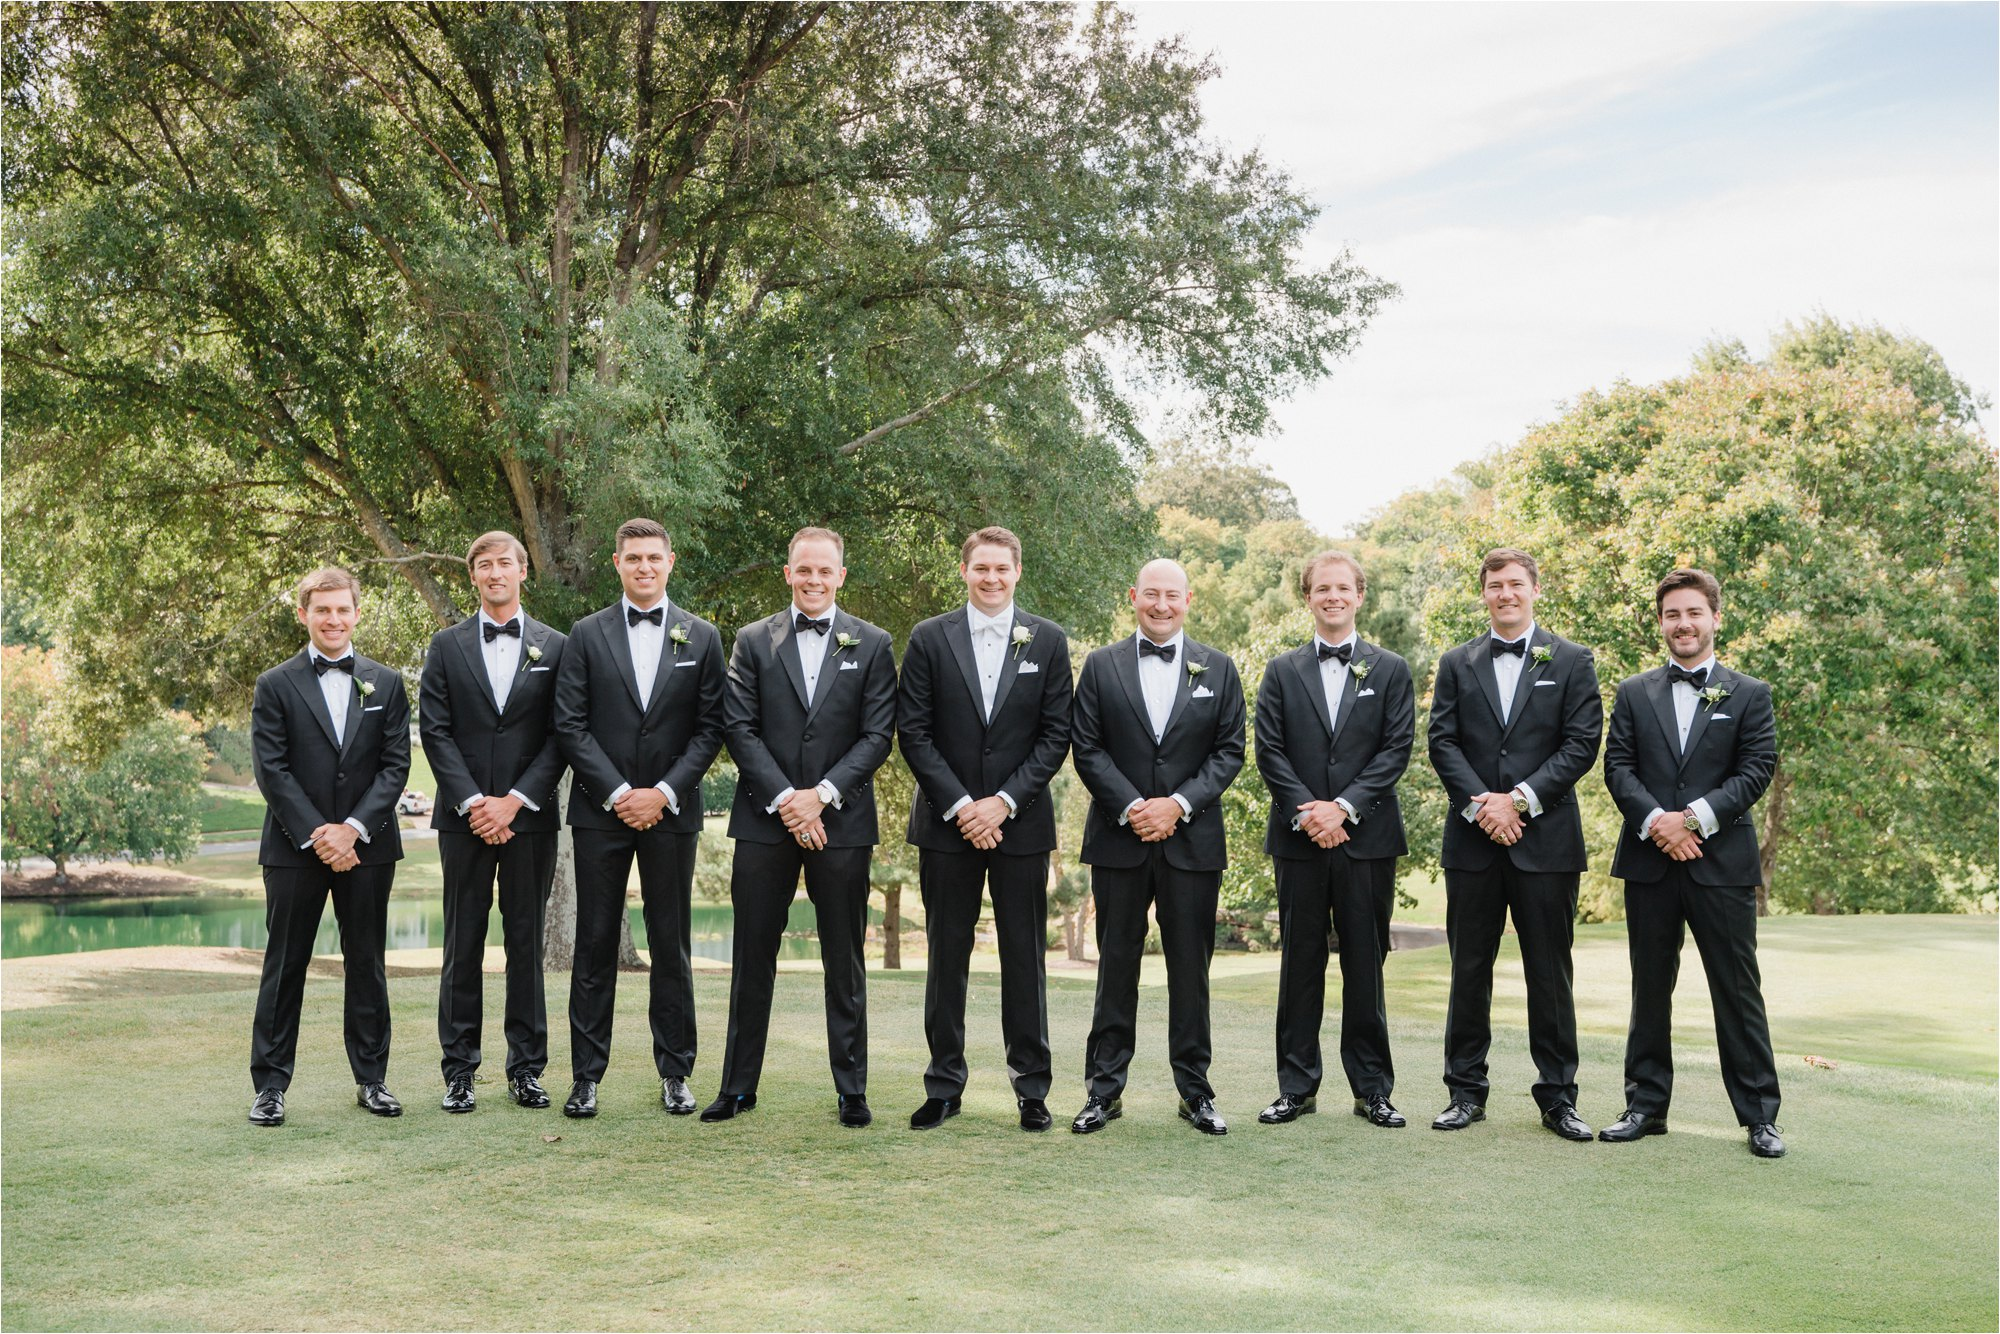 Groomsman lined up at greensboro country club